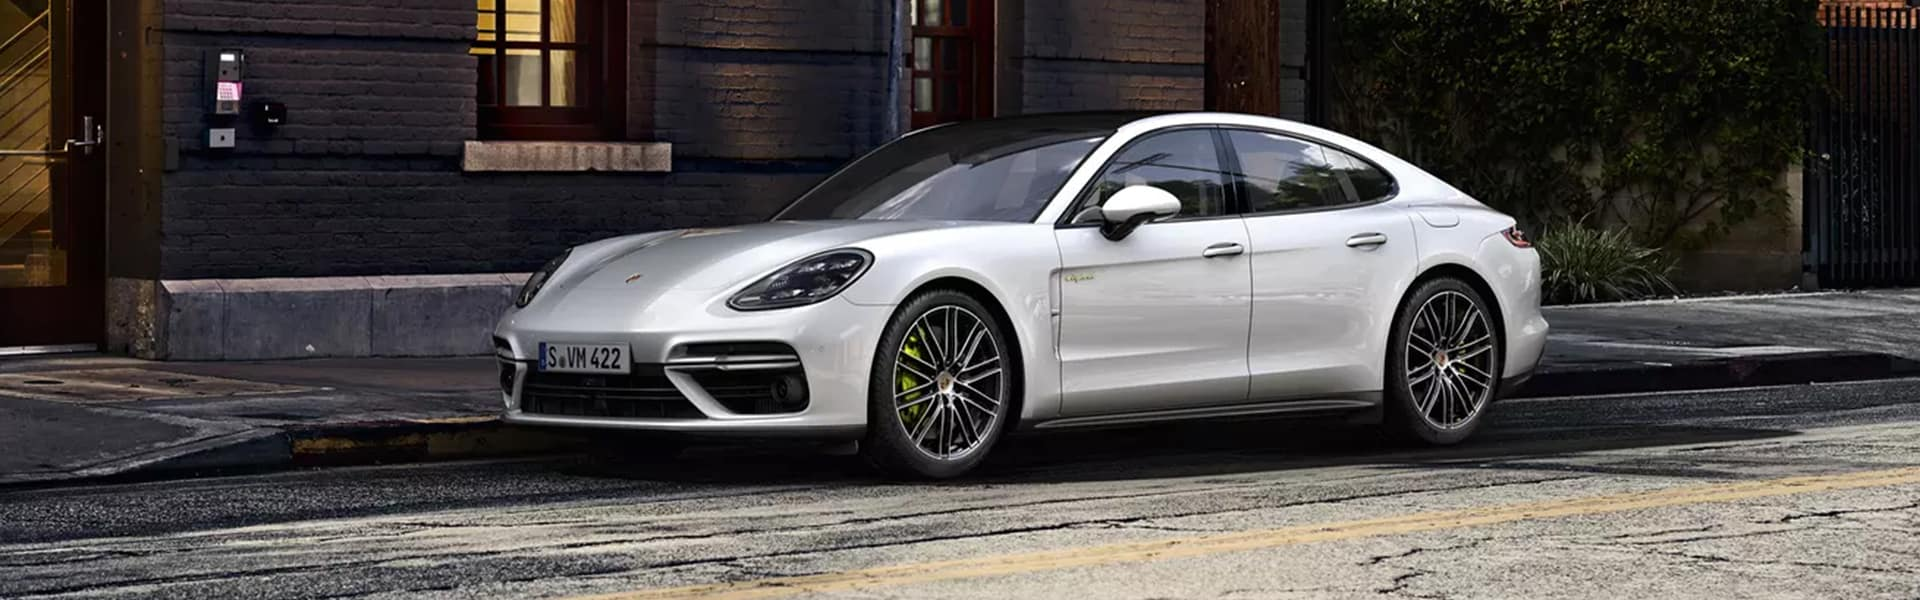 2020 Taycan vs. 2020 Panamera E-Hybrid Comparison at Porsche Louisville